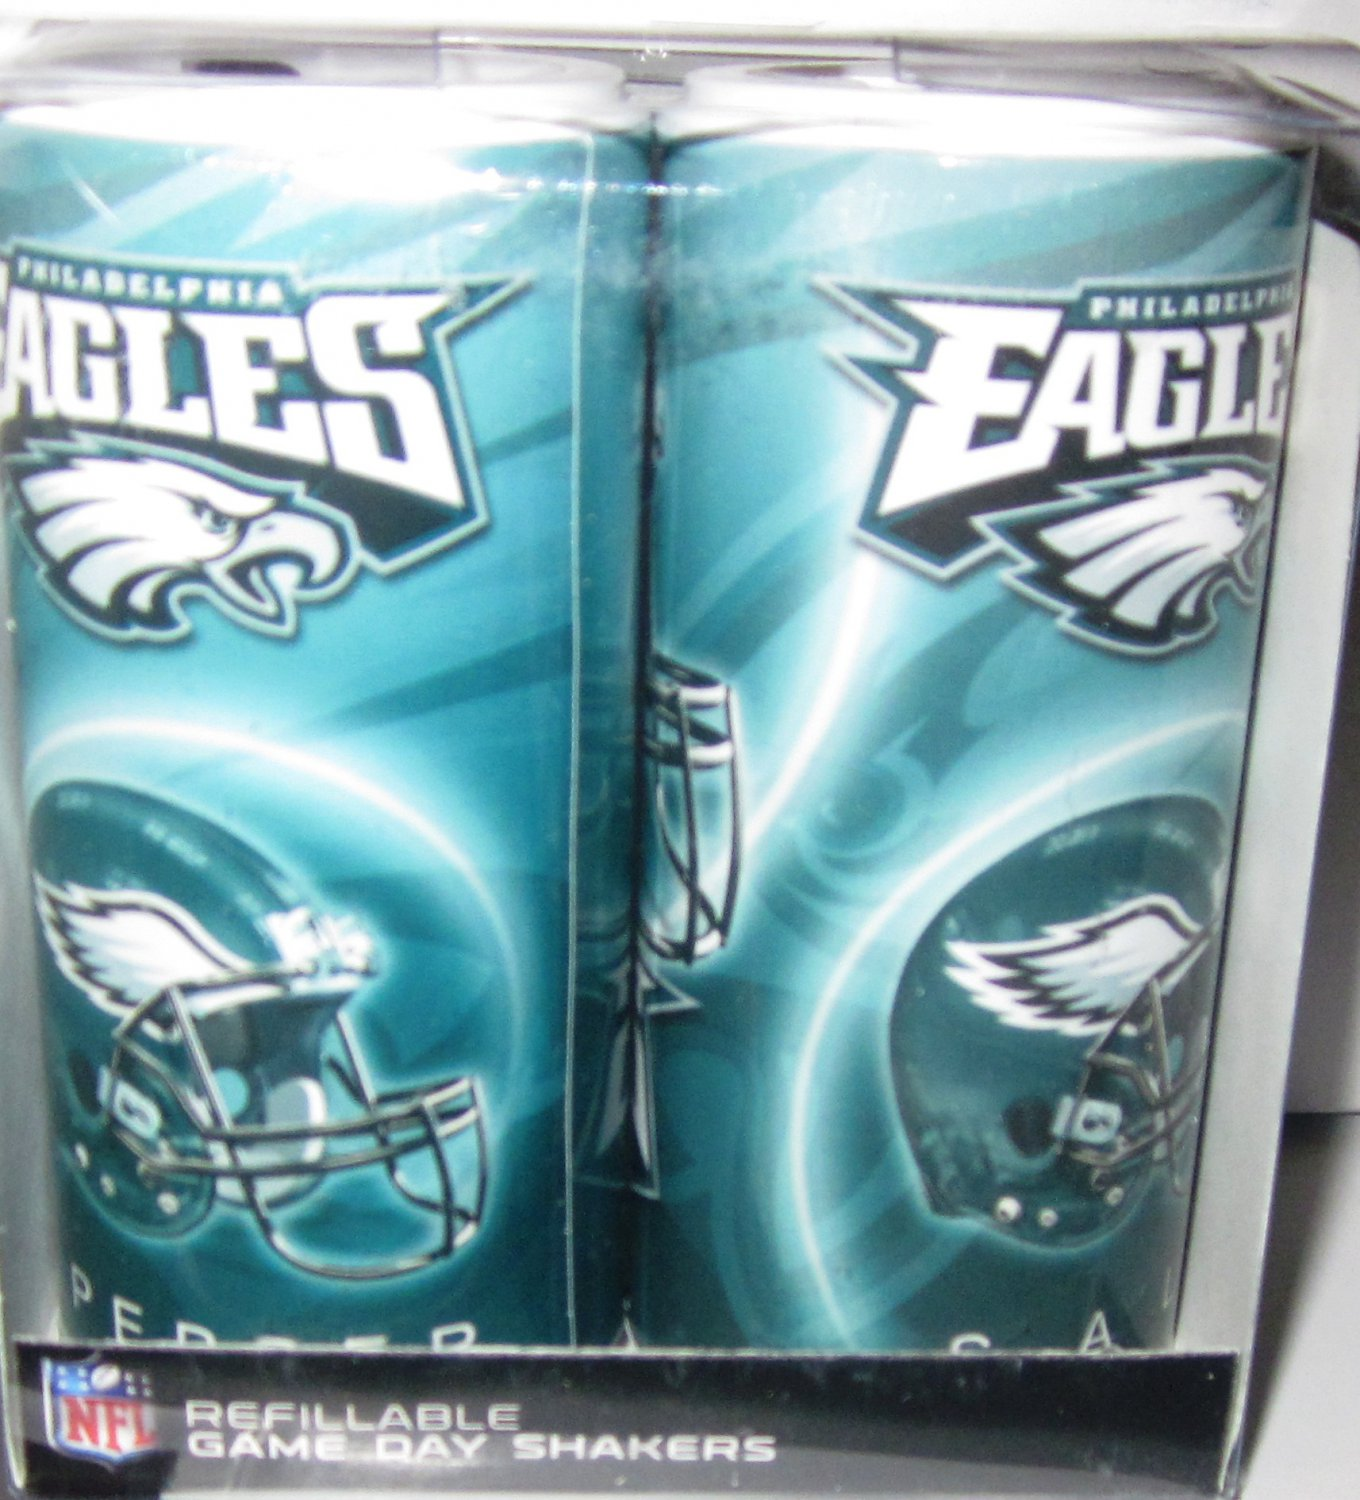 Philadelphia Eagles Refillable Game Day Salt and Pepper Shakers